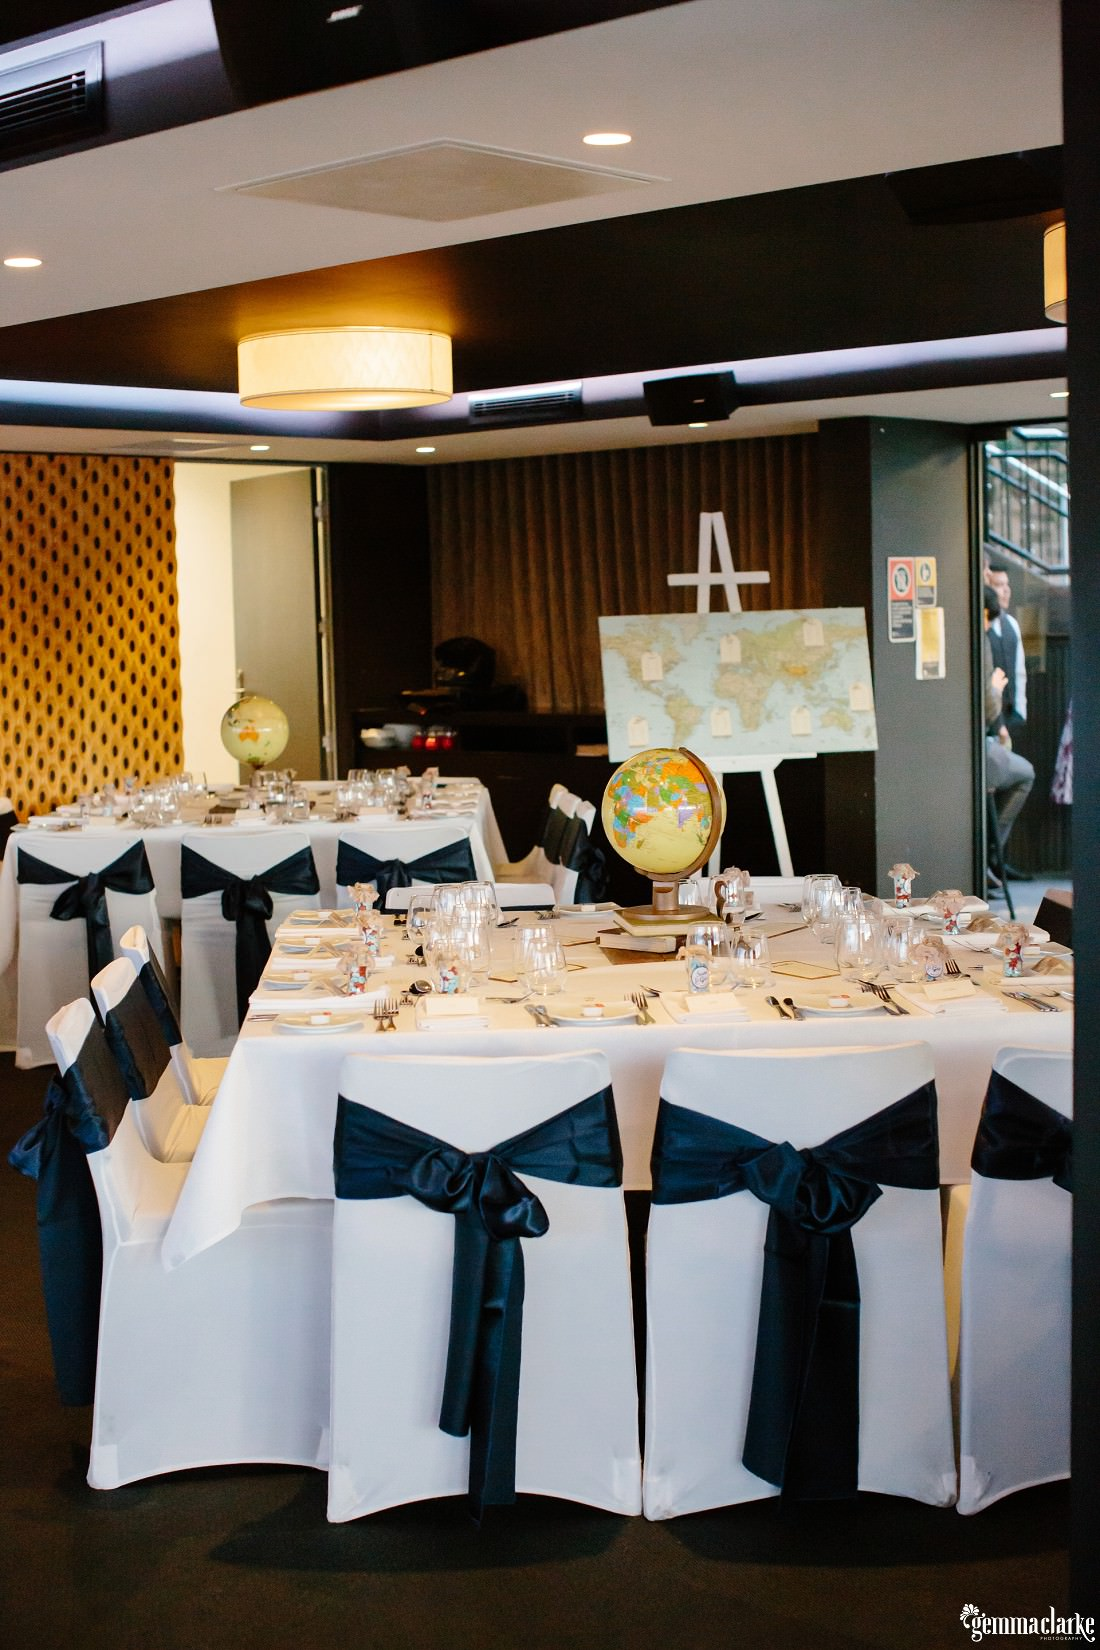 A wedding reception setup with white tables and chairs and decorative maps and world globes